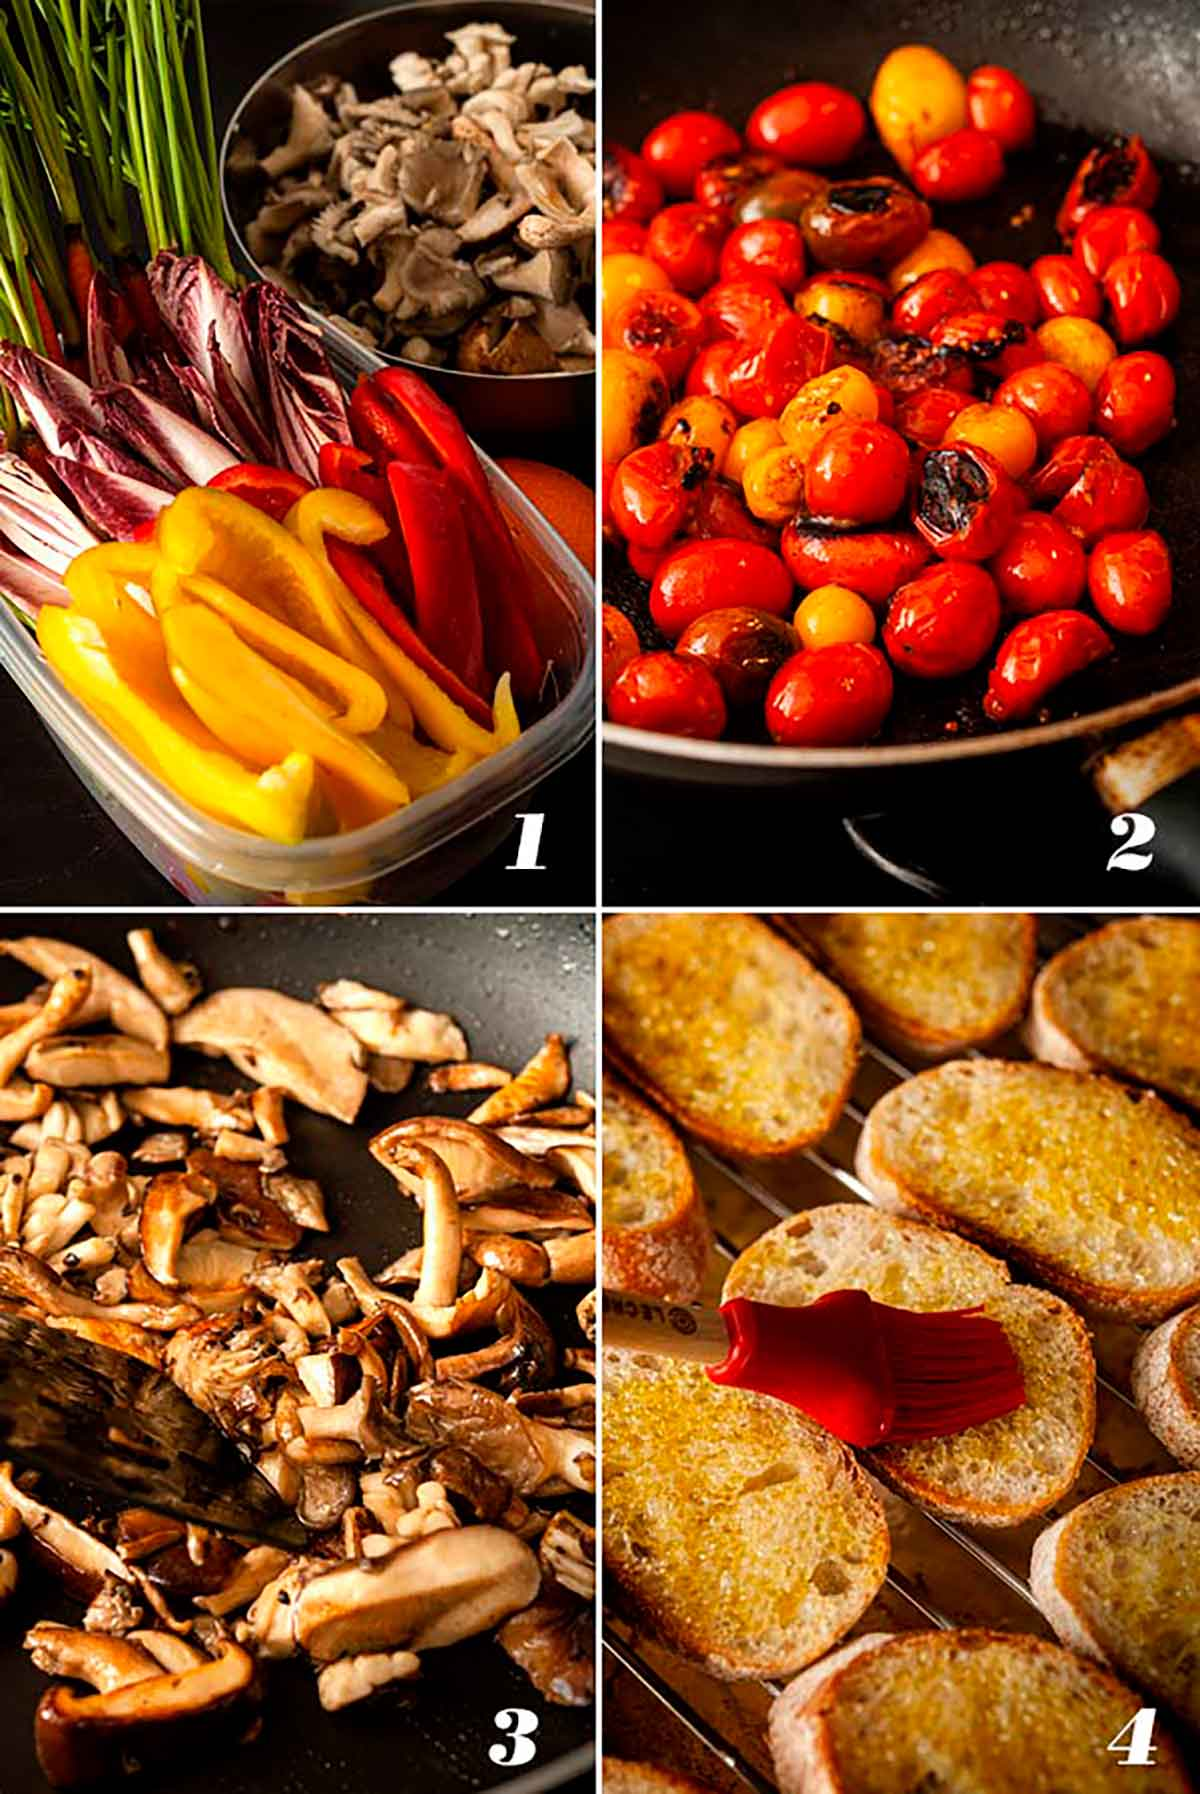 A step by step process showing how to prepare a crudités platter.